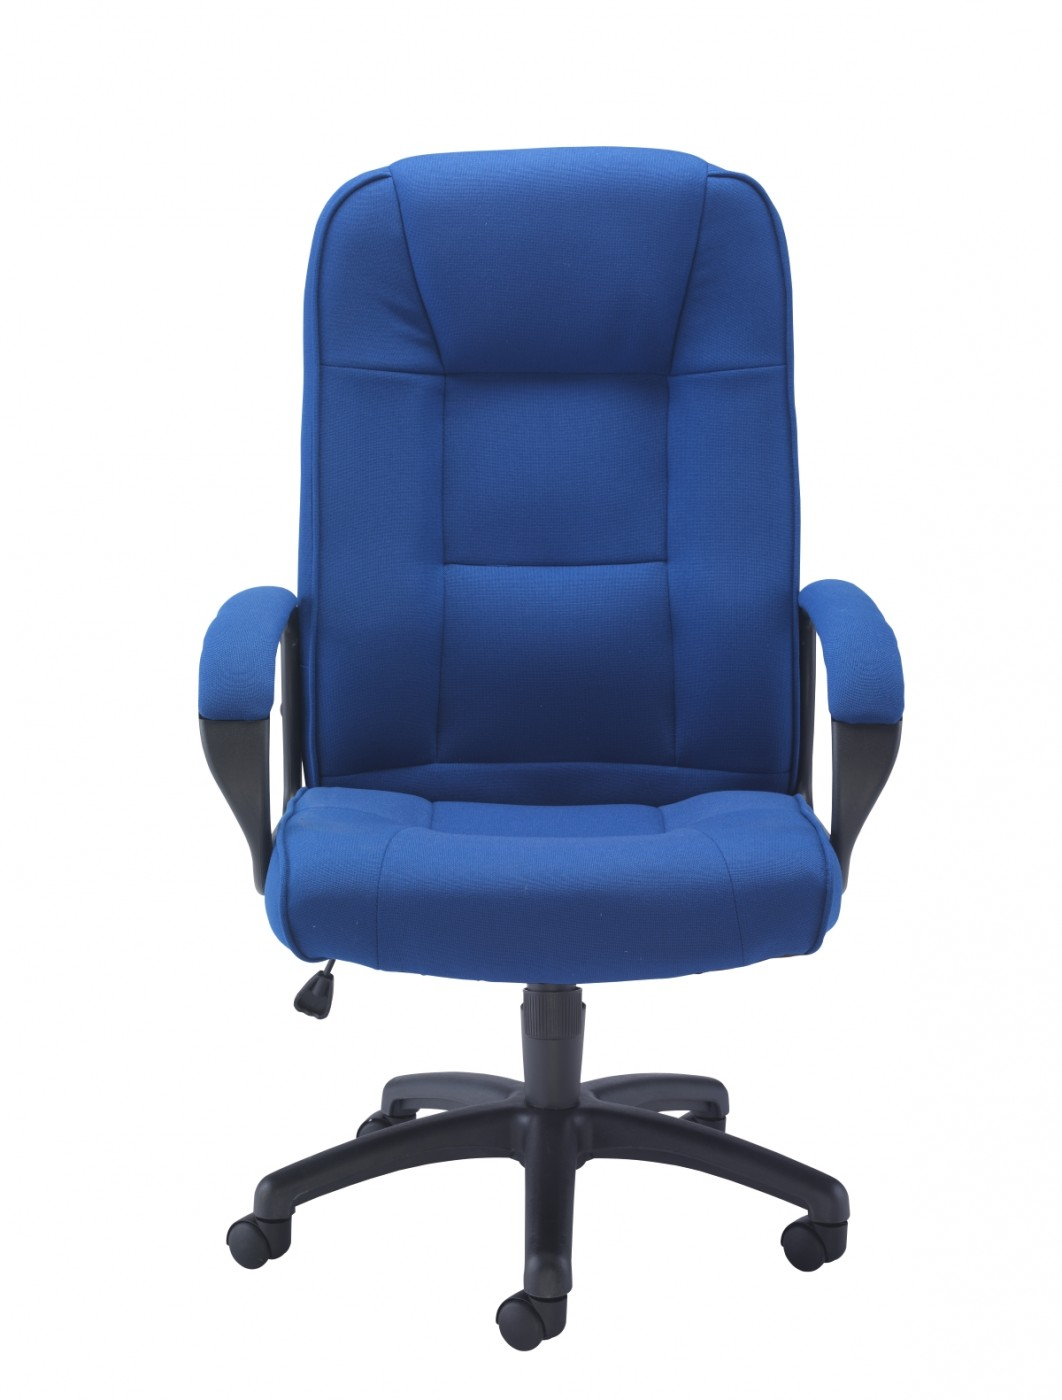 cloth office chairs. Simple Office Keno CH0137 Fabric Office Chair  Enlarged View To Cloth Chairs A